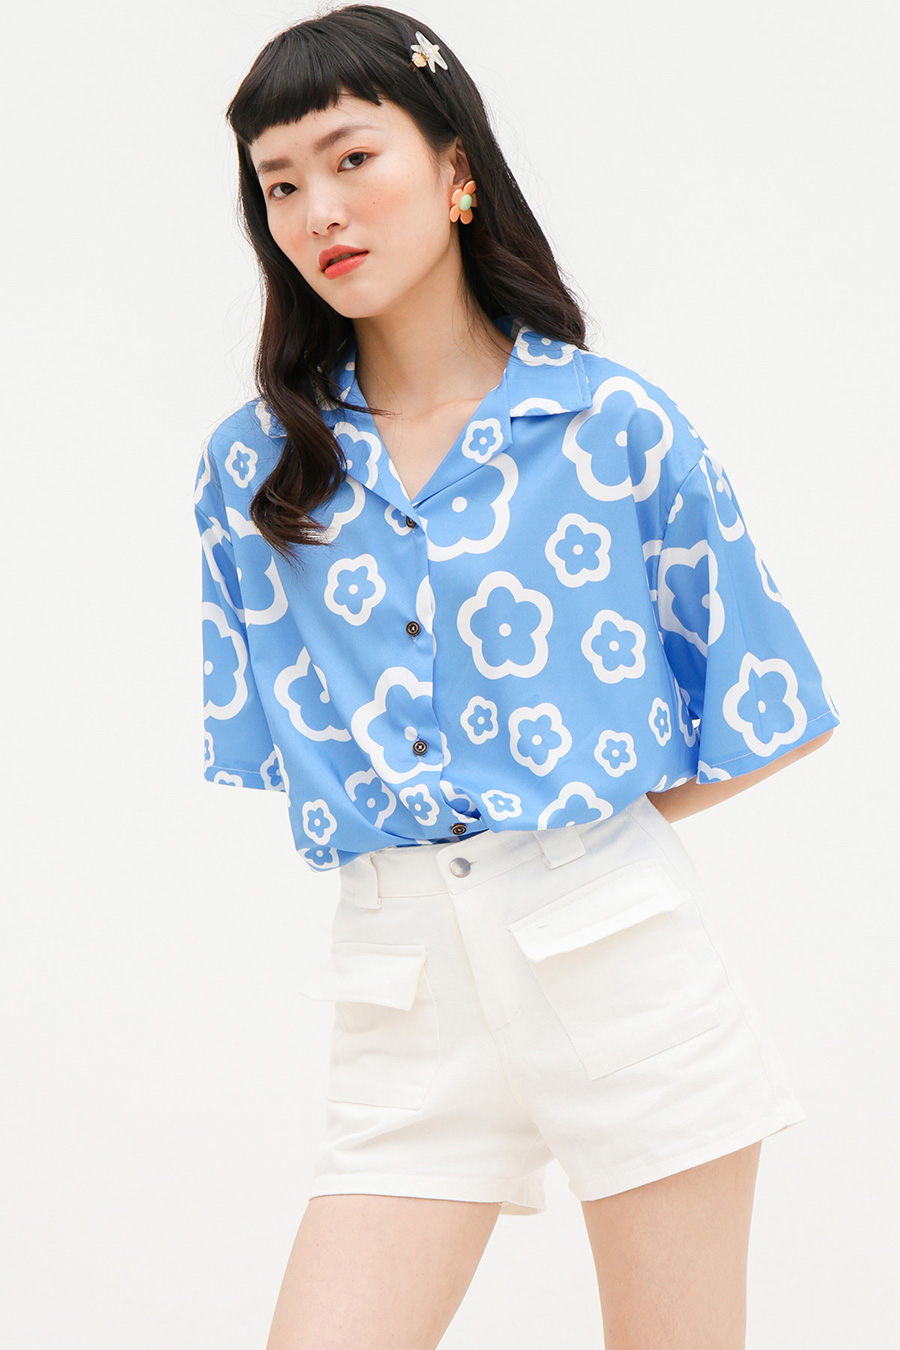 COTE TOP - PERRY POPPY